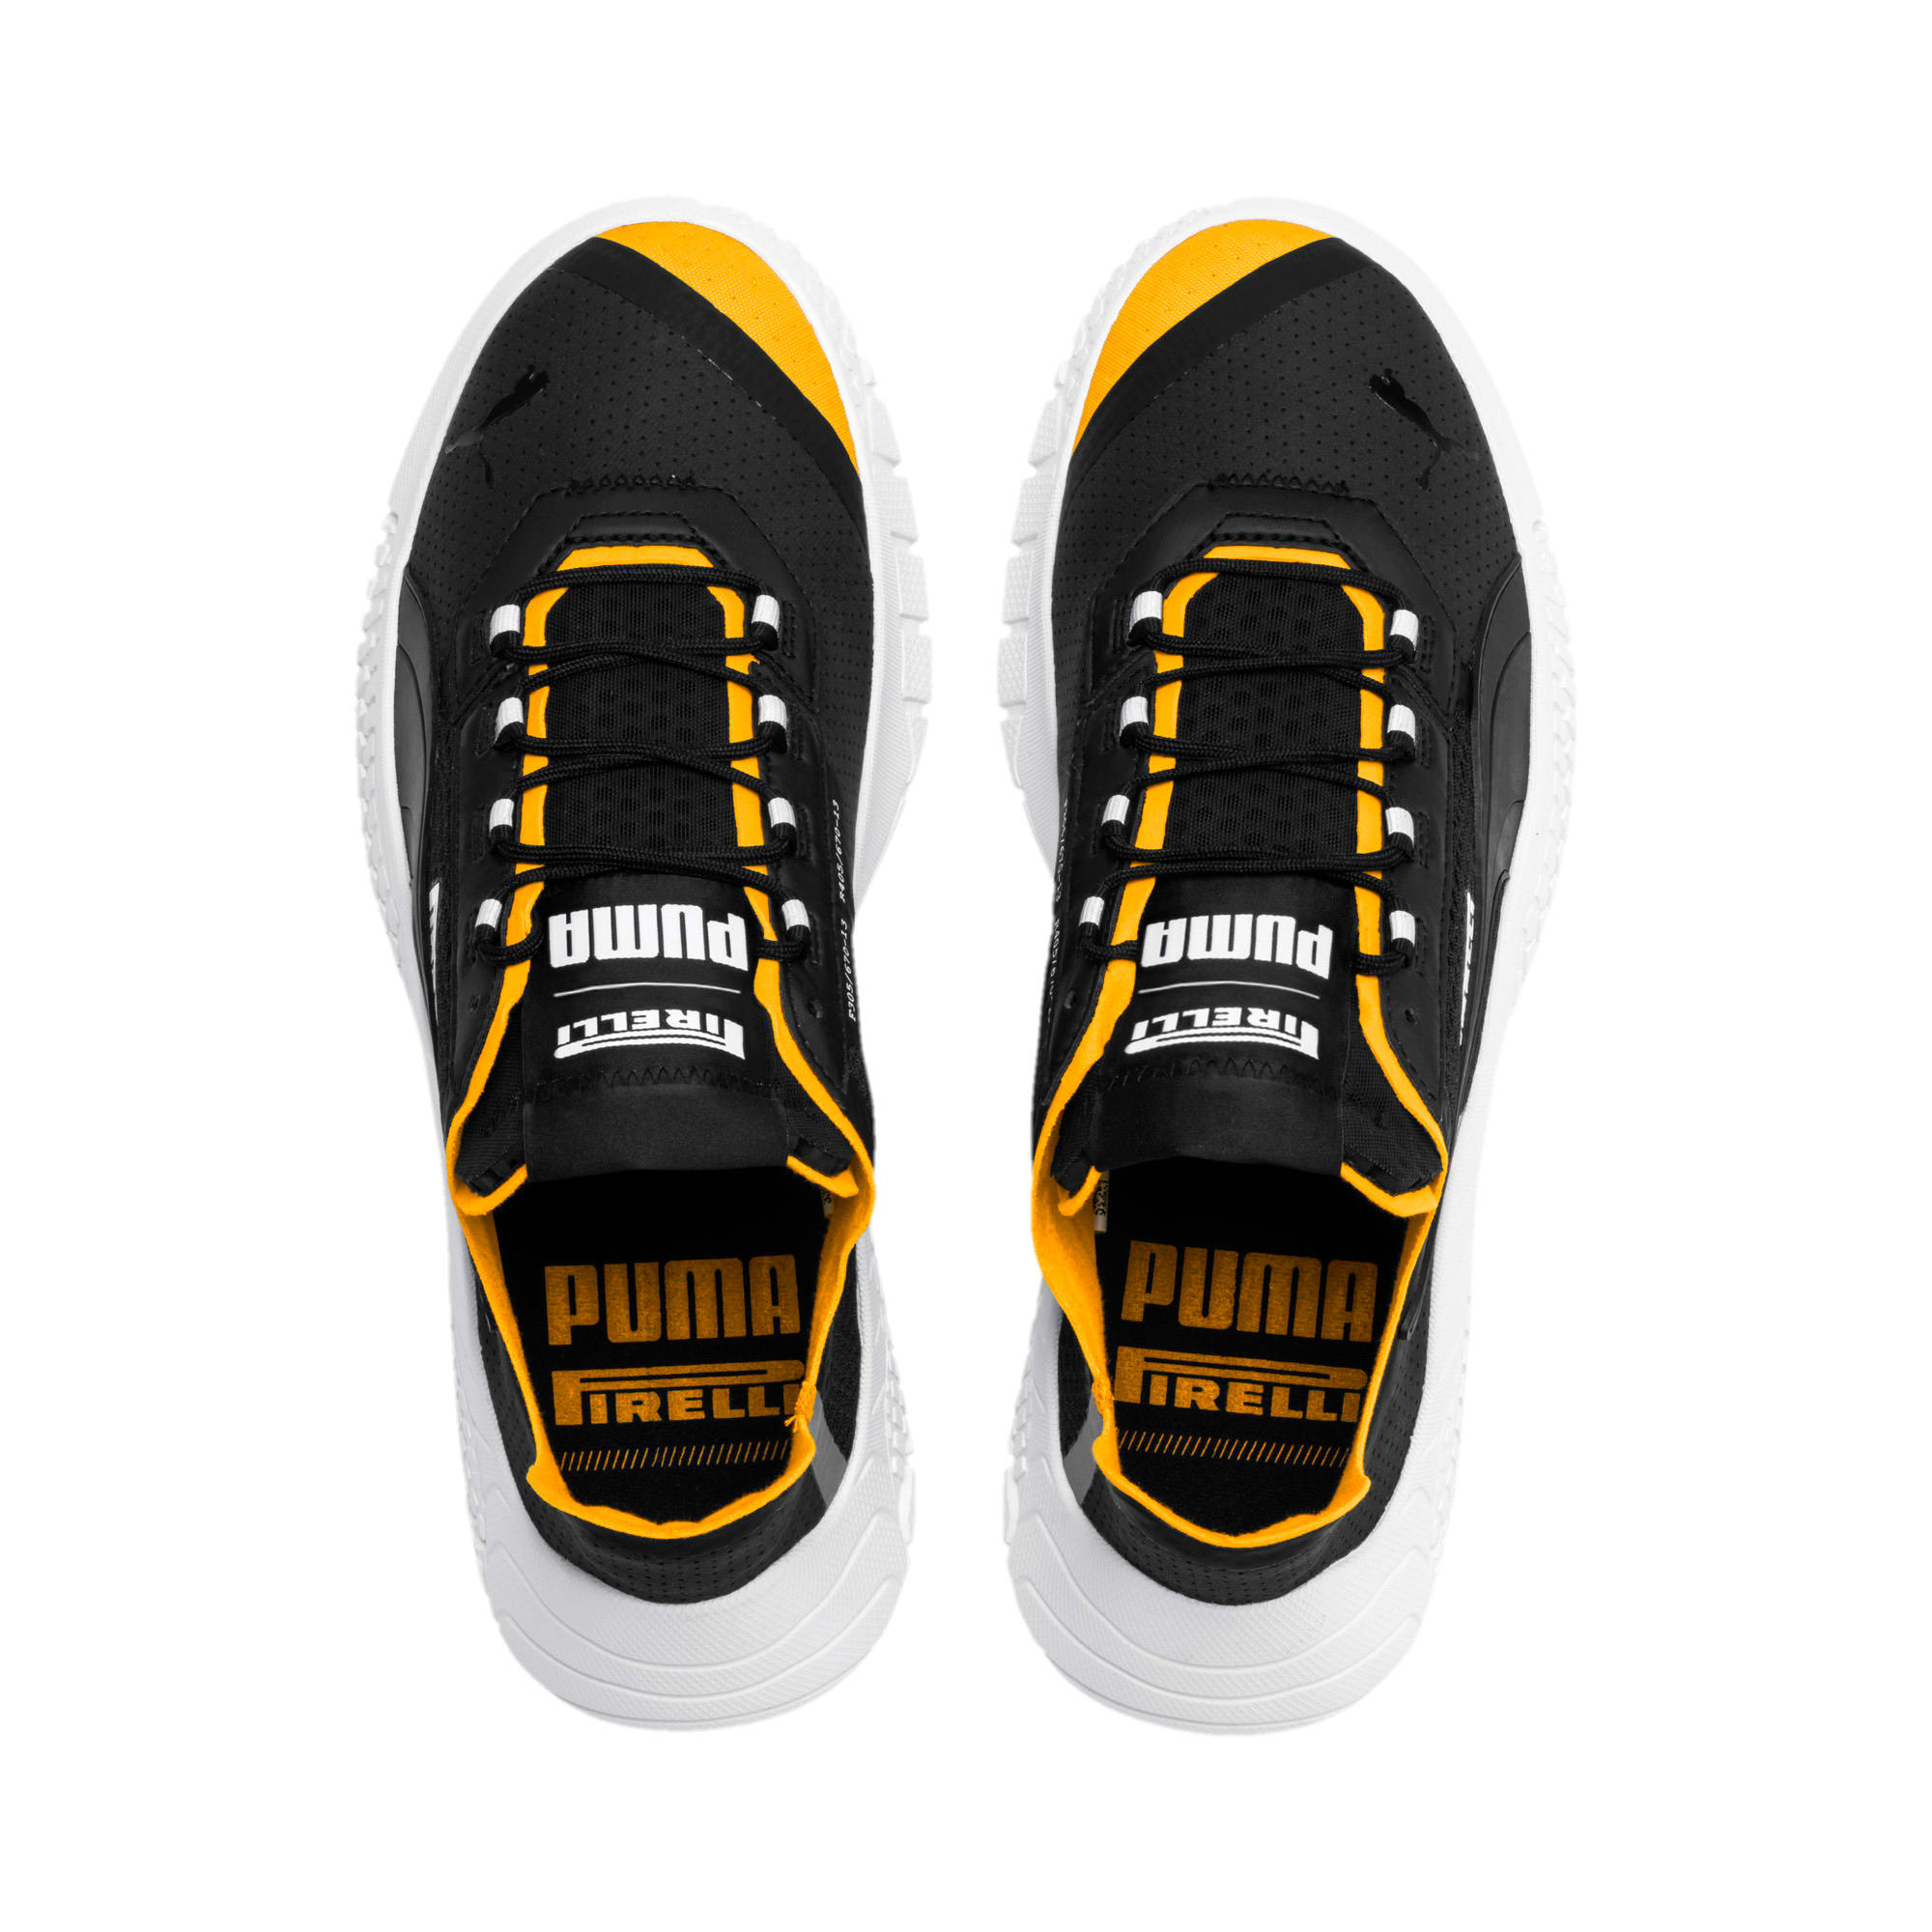 Thumbnail 7 of Scarpe da ginnastica Pirelli Replicat-X, Puma Black-Puma White-Zinnia, medium